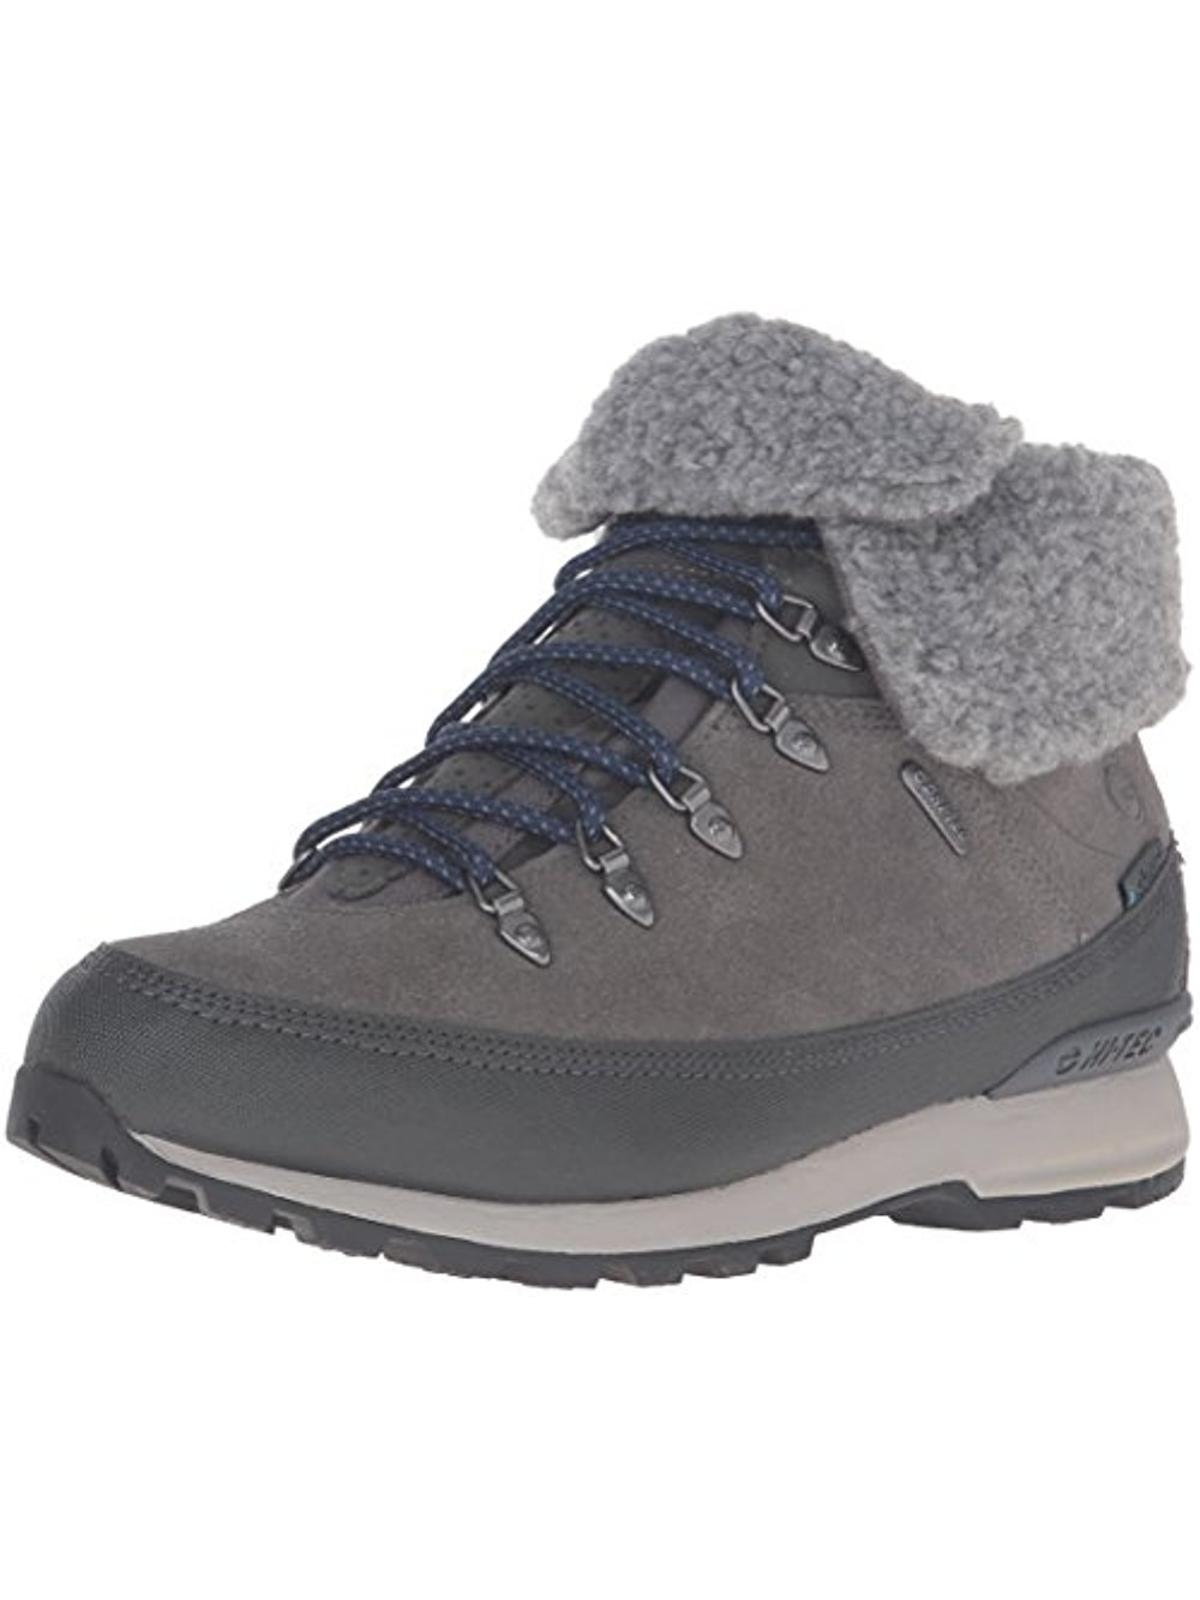 Hi-Tec Womens Kono Espresso Suede Waterproof Hiking Boots by Hi-Tec